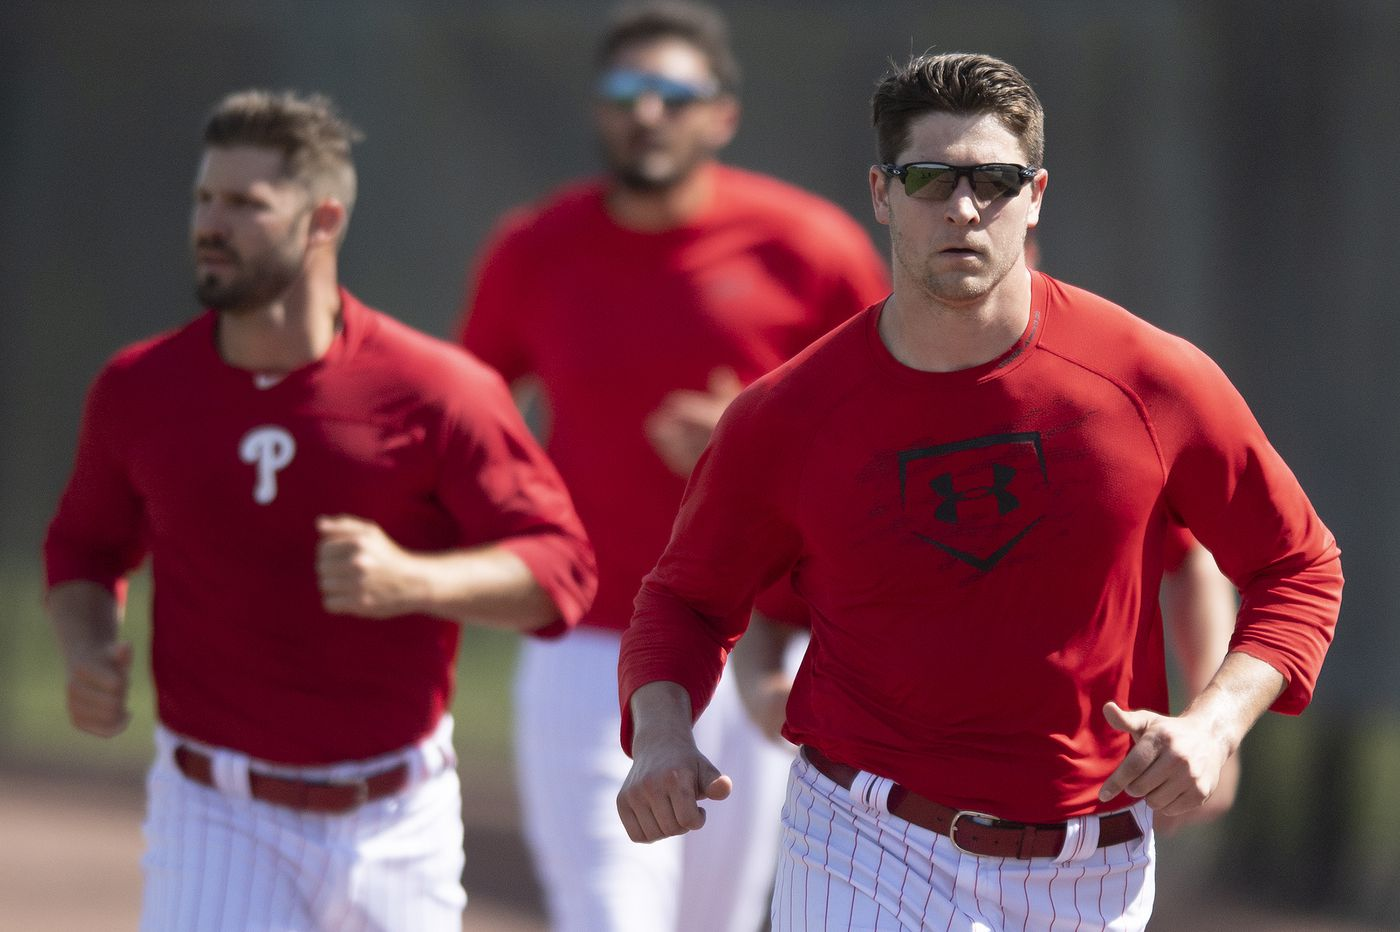 Phillies' Jerad Eickhoff finally has a 'great day' with pain-free bullpen session